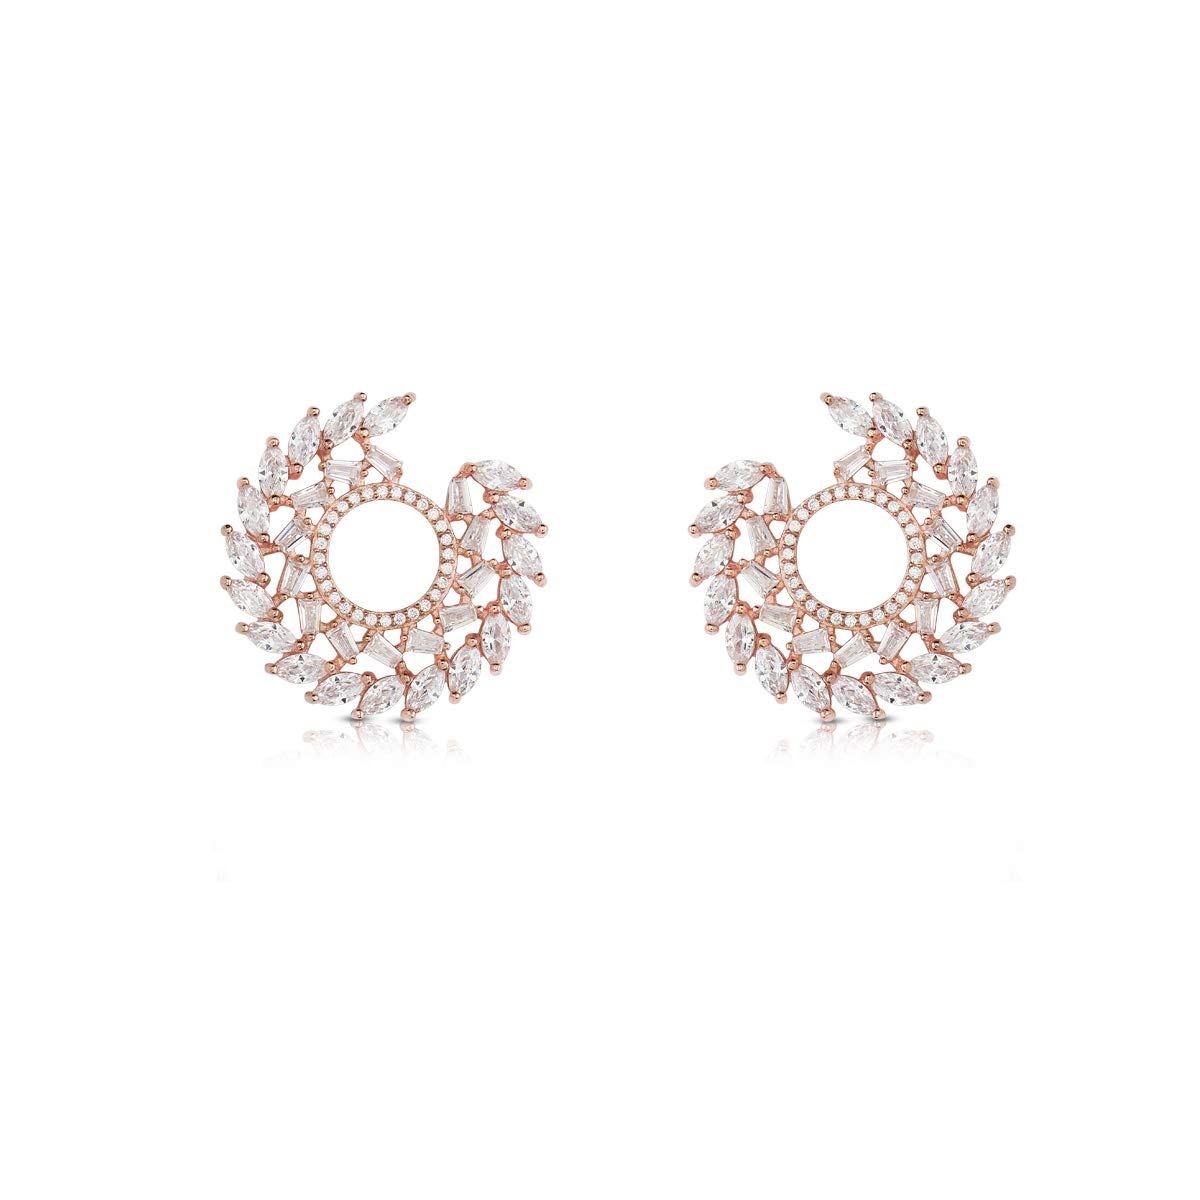 Izaara 92.5 Premium Sterling Silver Rose Polish Earring Studded with Cubic Zirconia